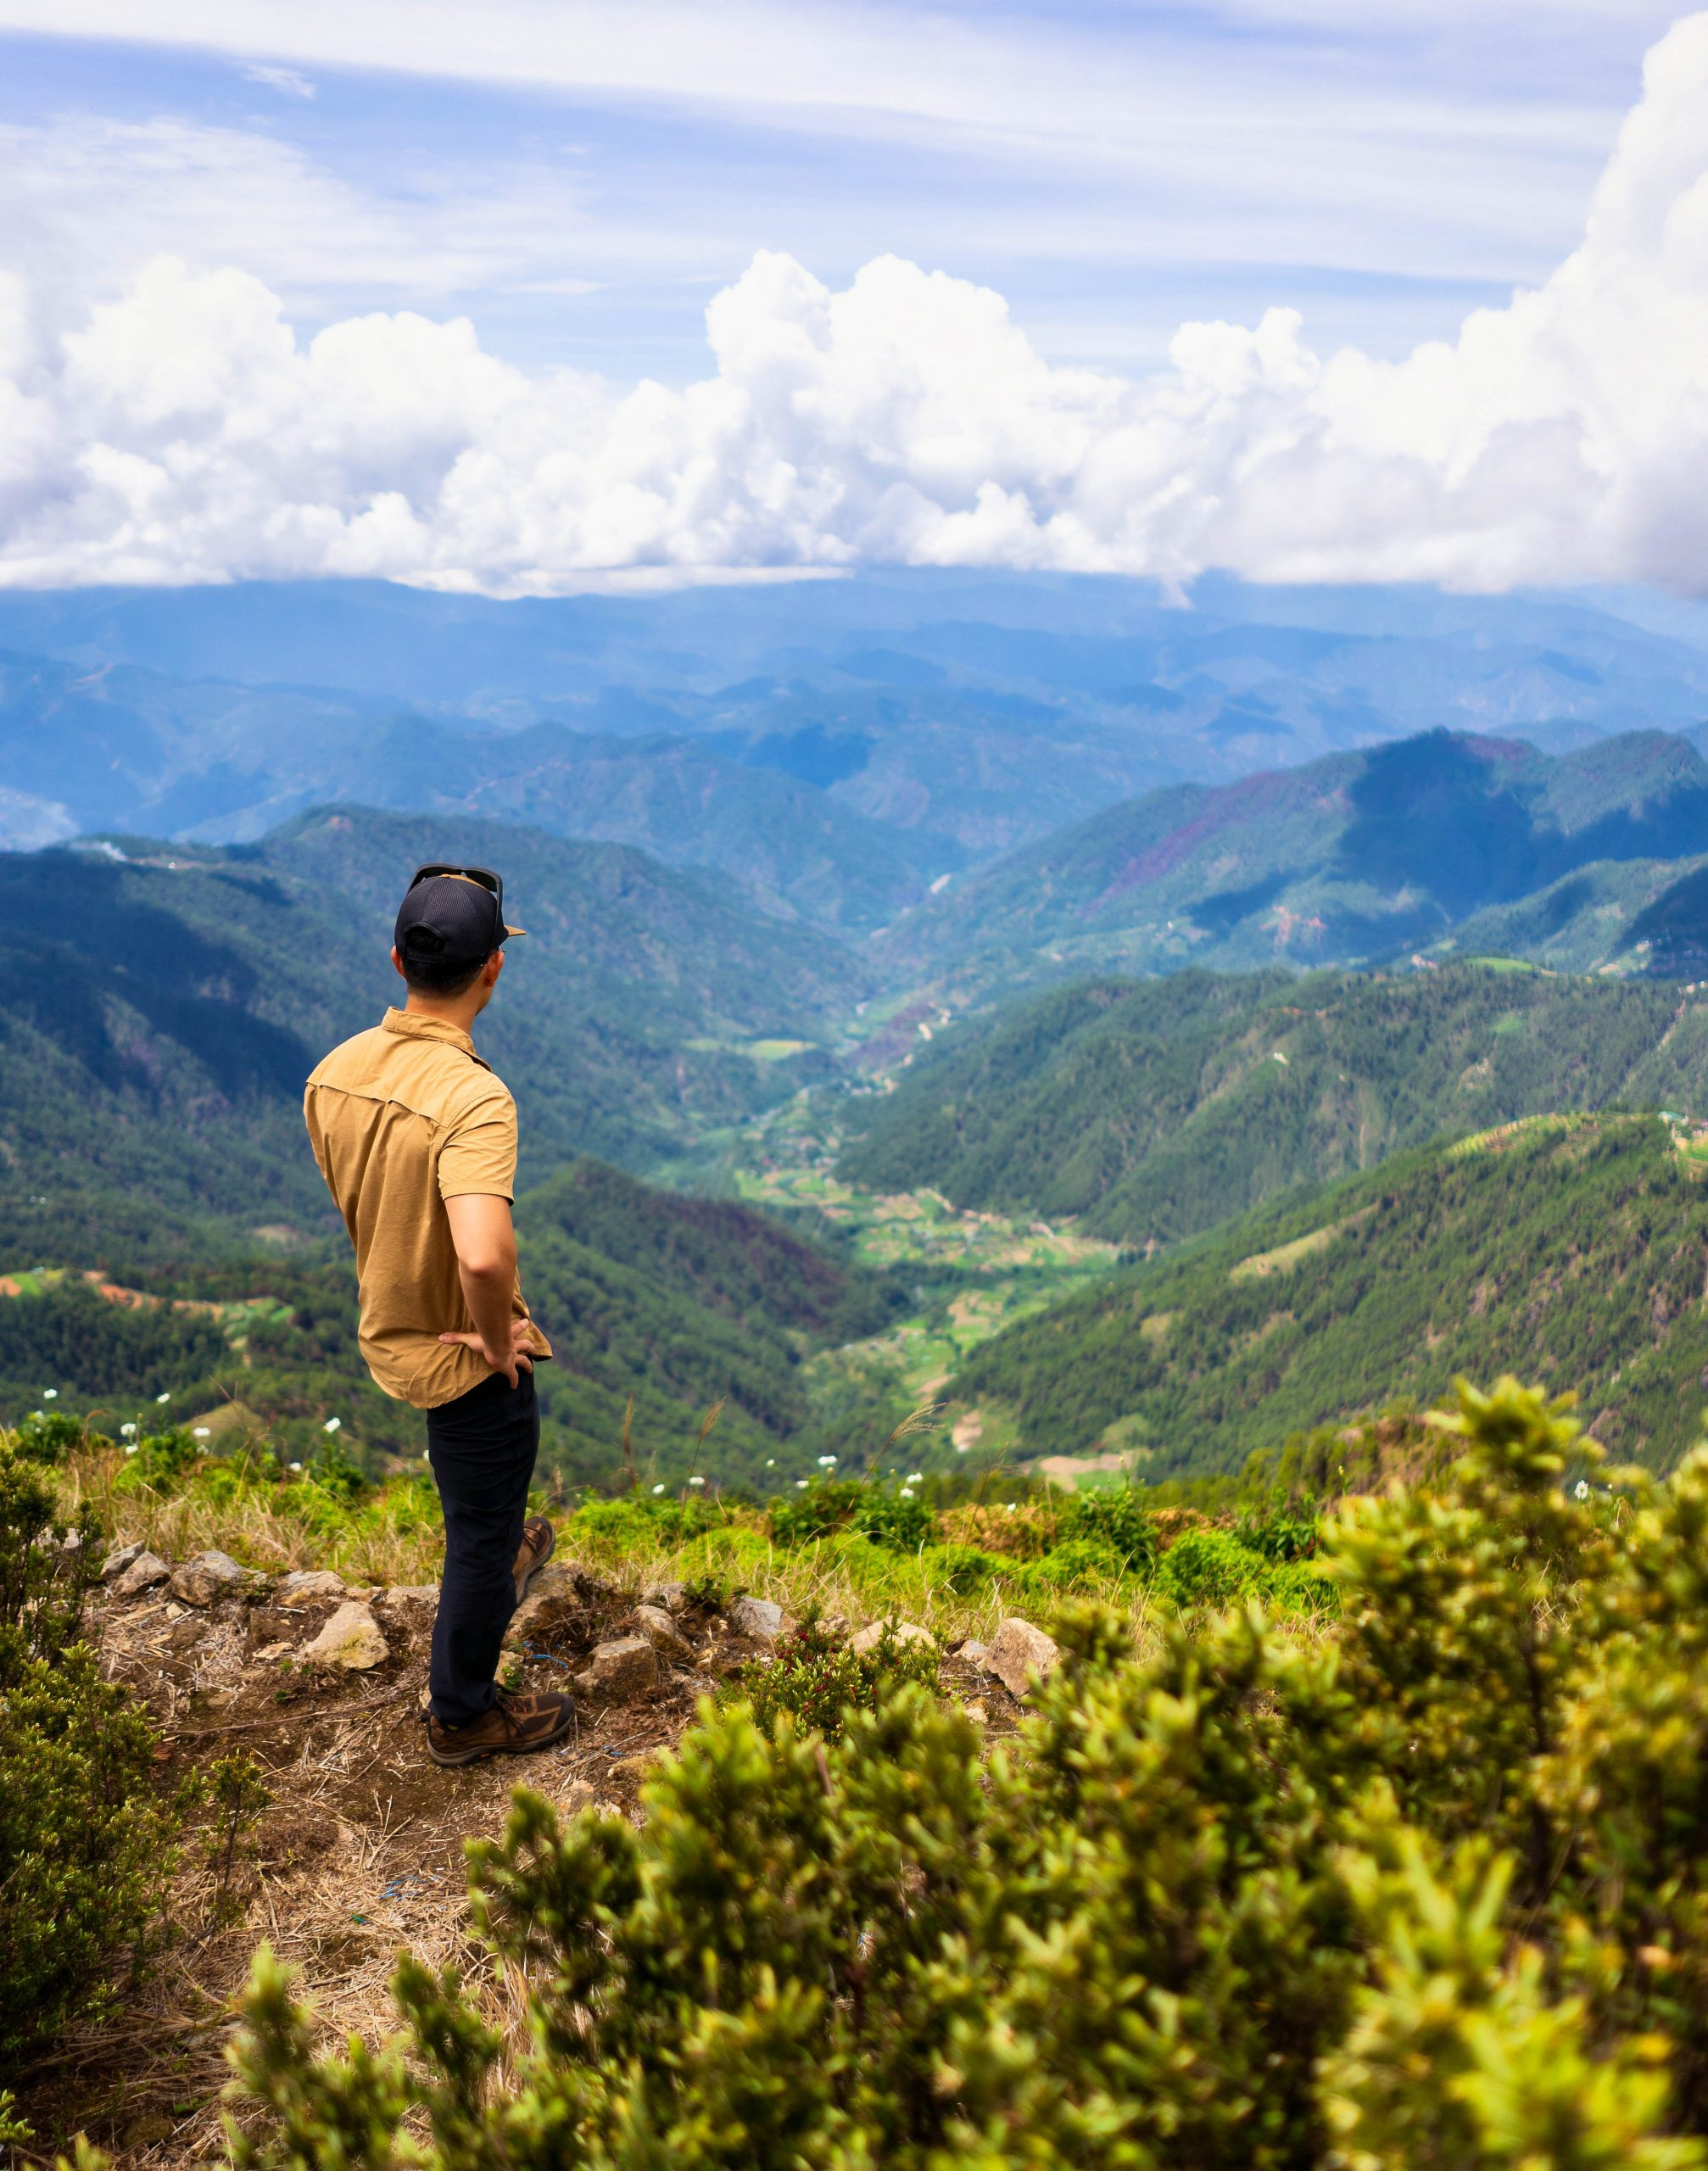 A man stands on high ground overlooking a green and mountainous landscape laid out beneath a cloudy sky